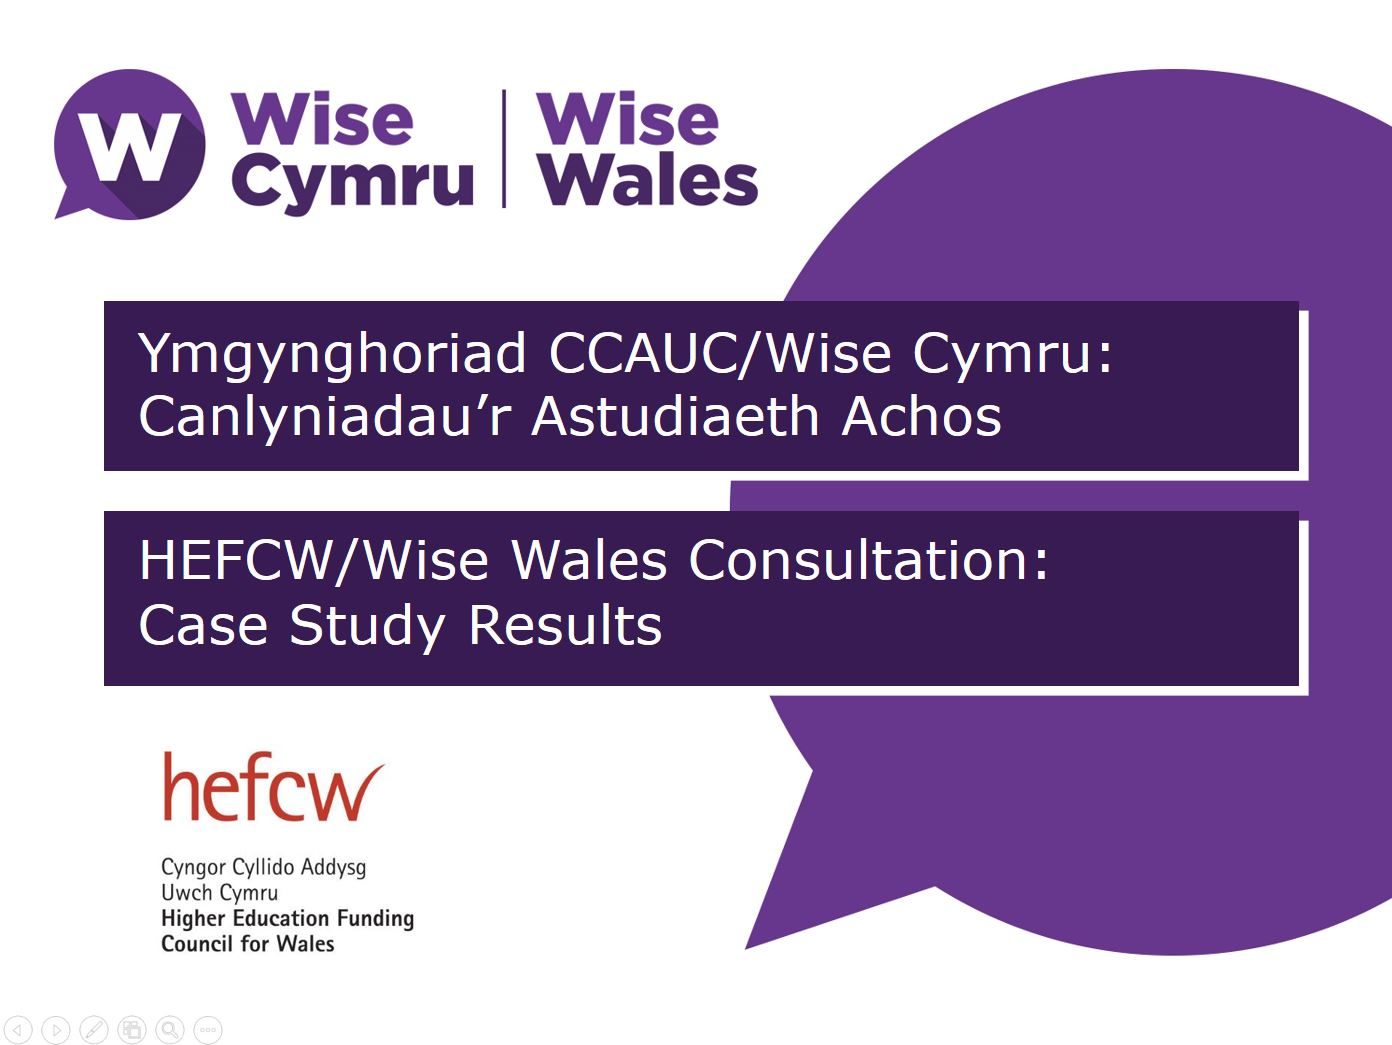 HEFCW/ Wise Wales Consultation